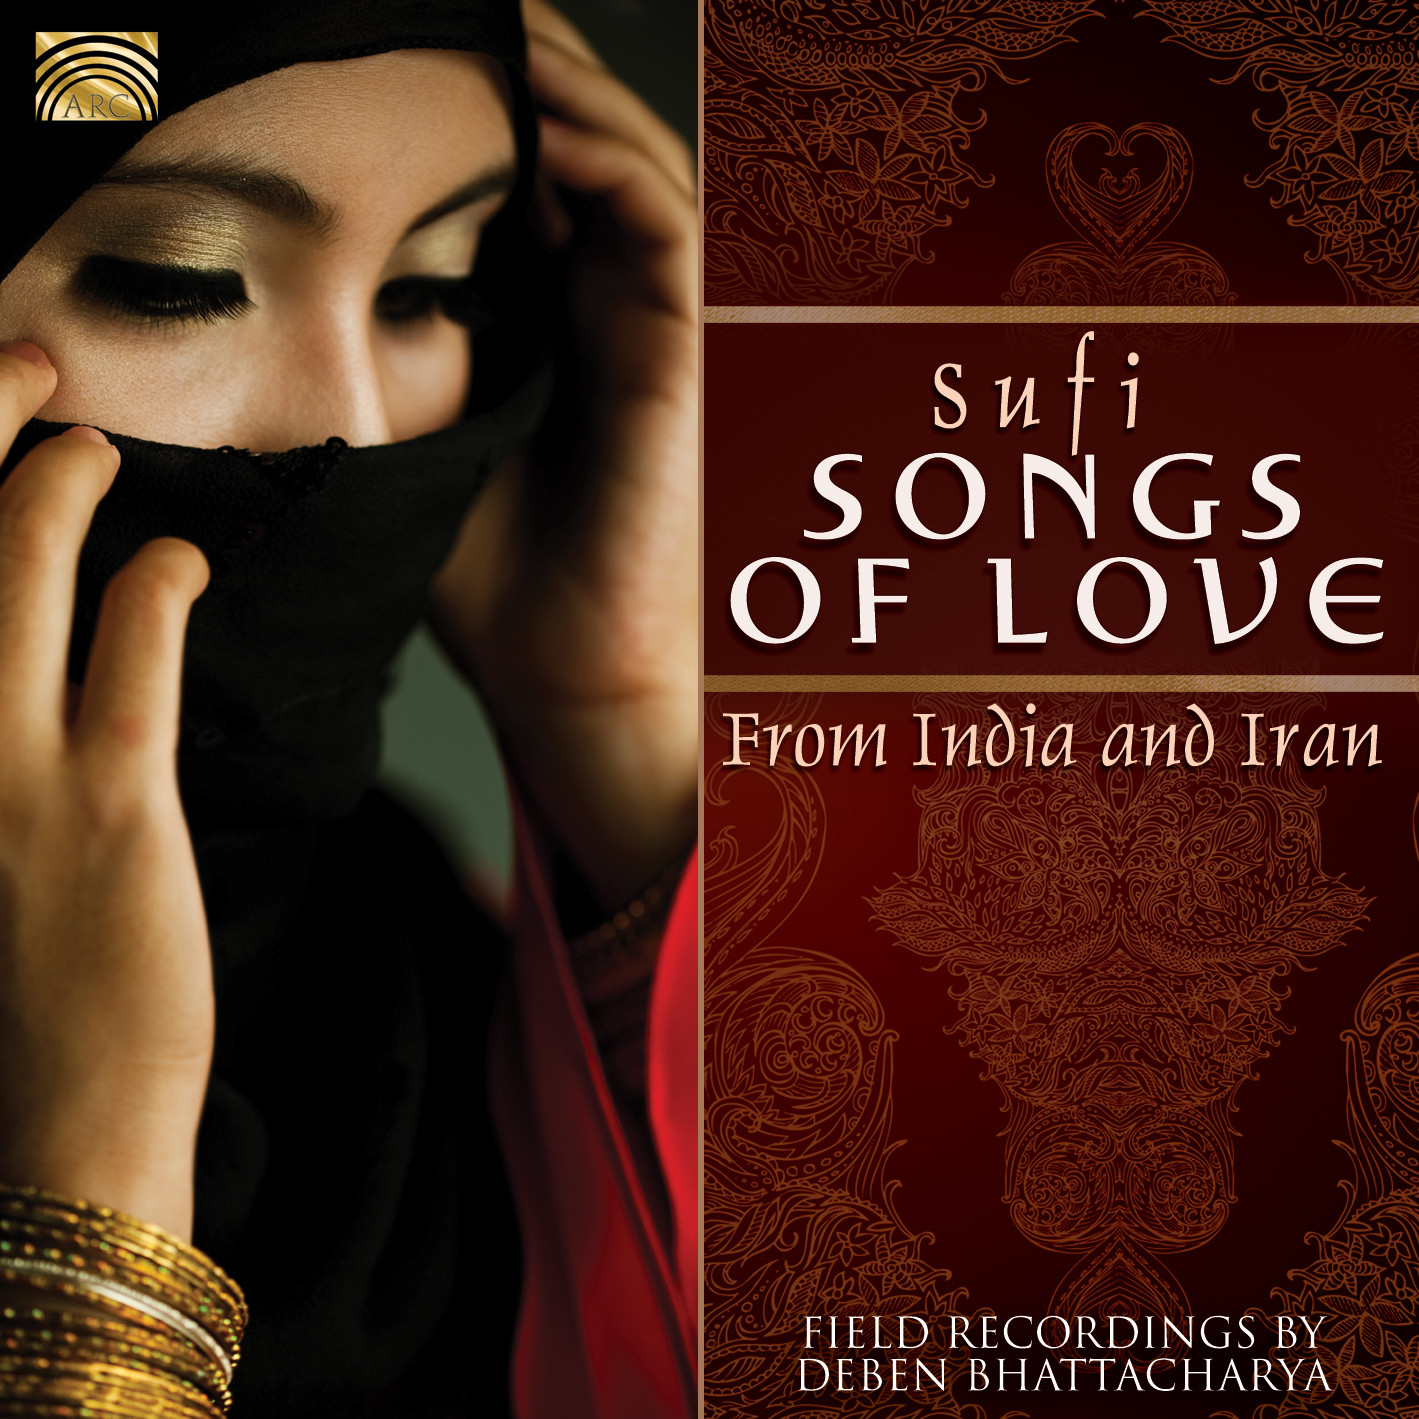 EUCD2436 Sufi Songs of Love, from India and Iran - Field recordings by Deben Bhattacharya